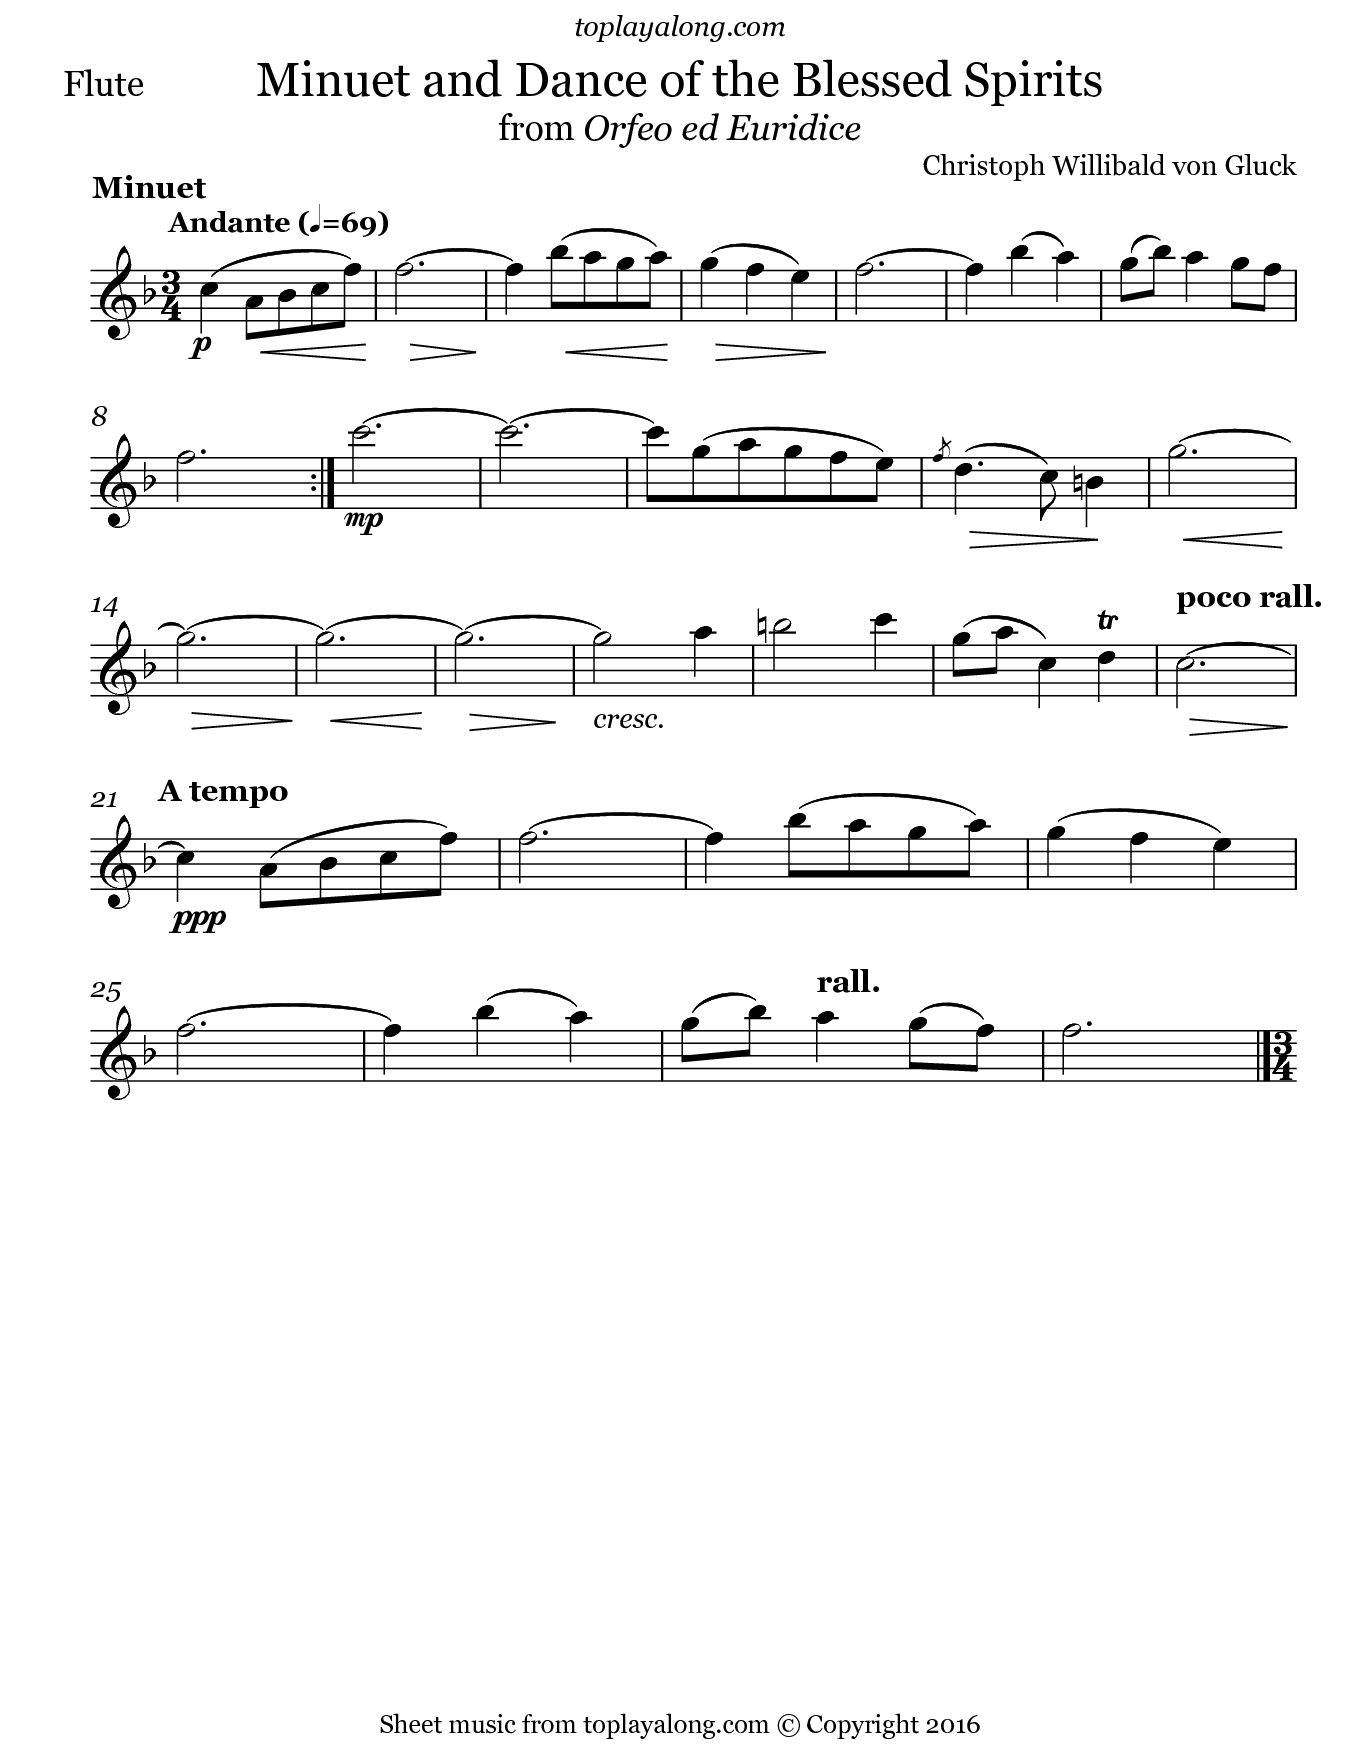 Dance of the Blessed Spirits by Gluck. Sheet music for Flute, page 1.